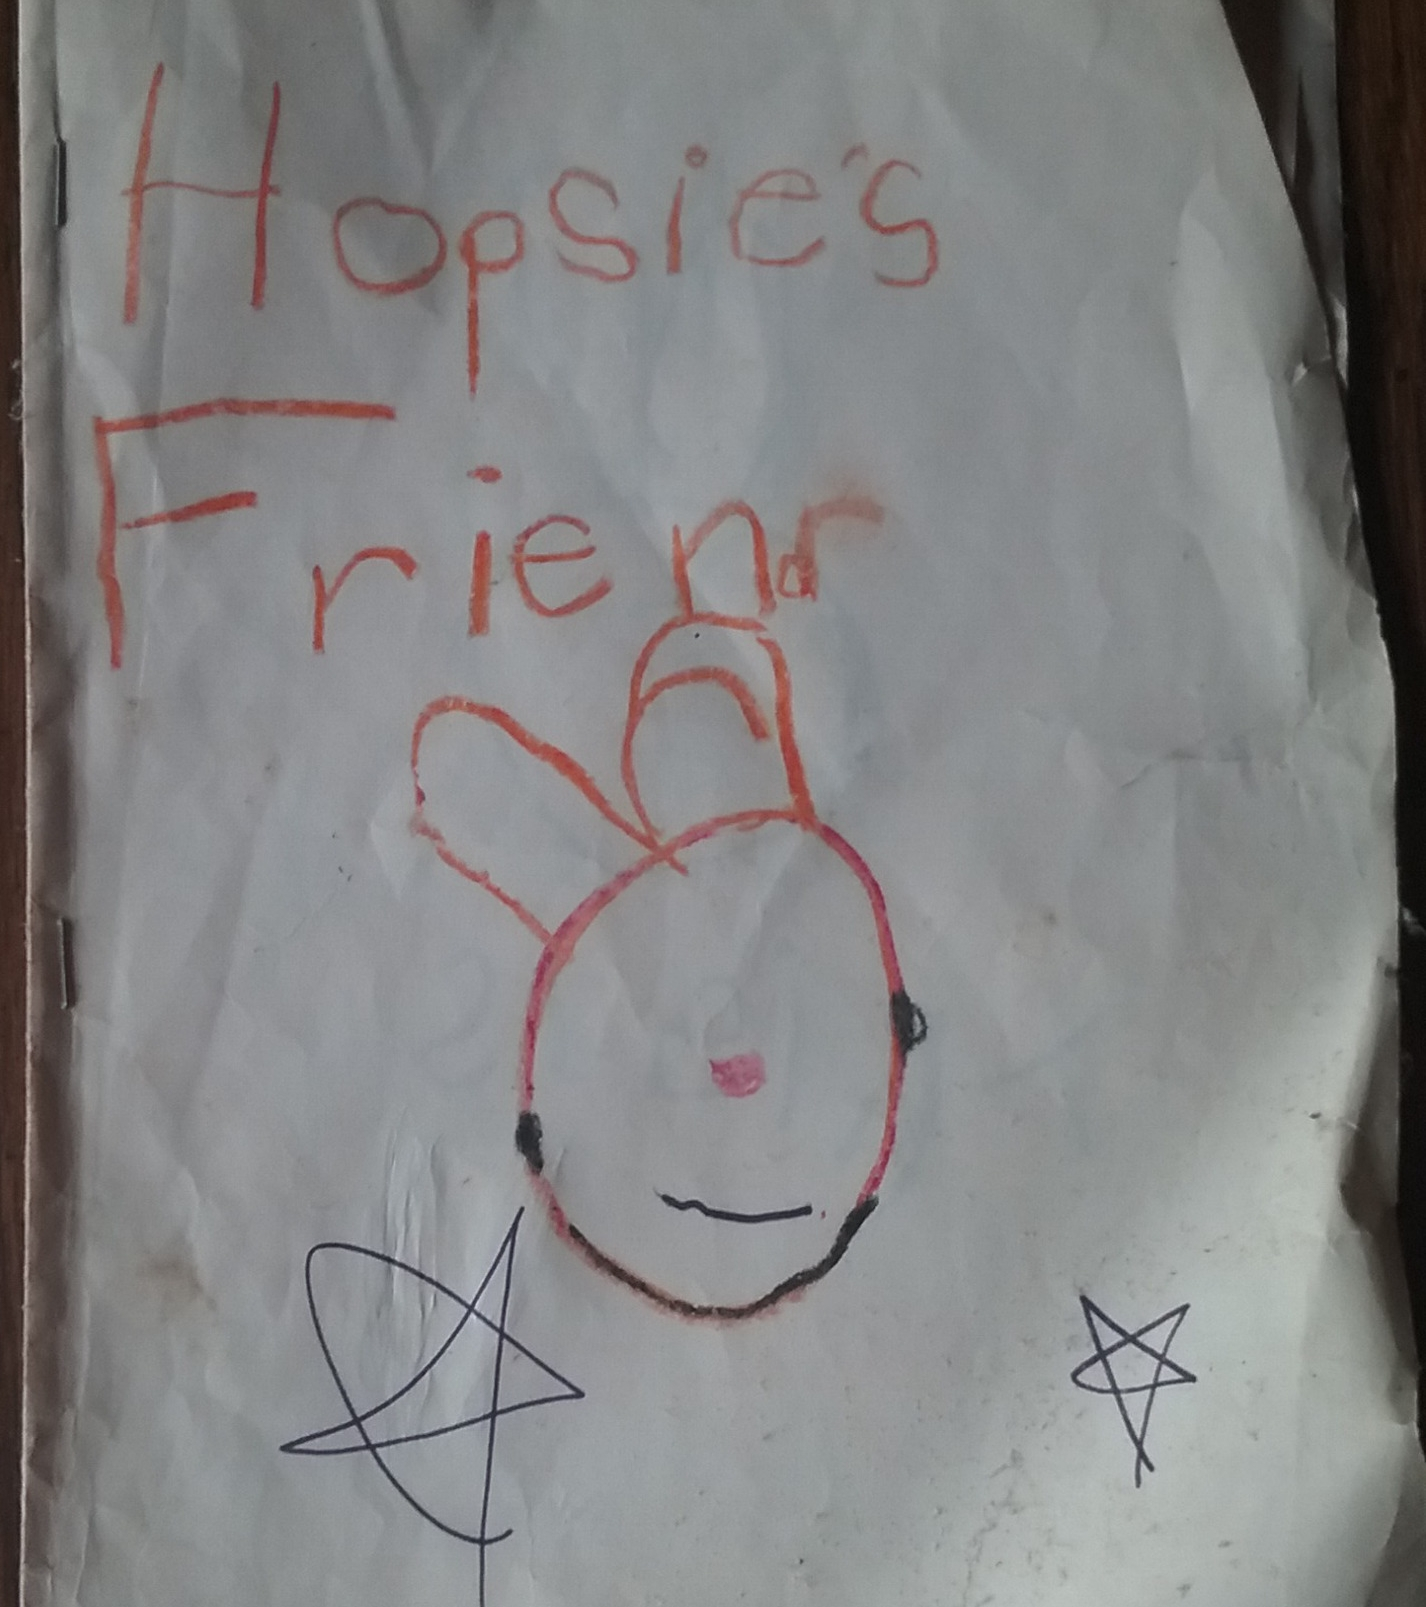 Hopsie's Friend - cover page.